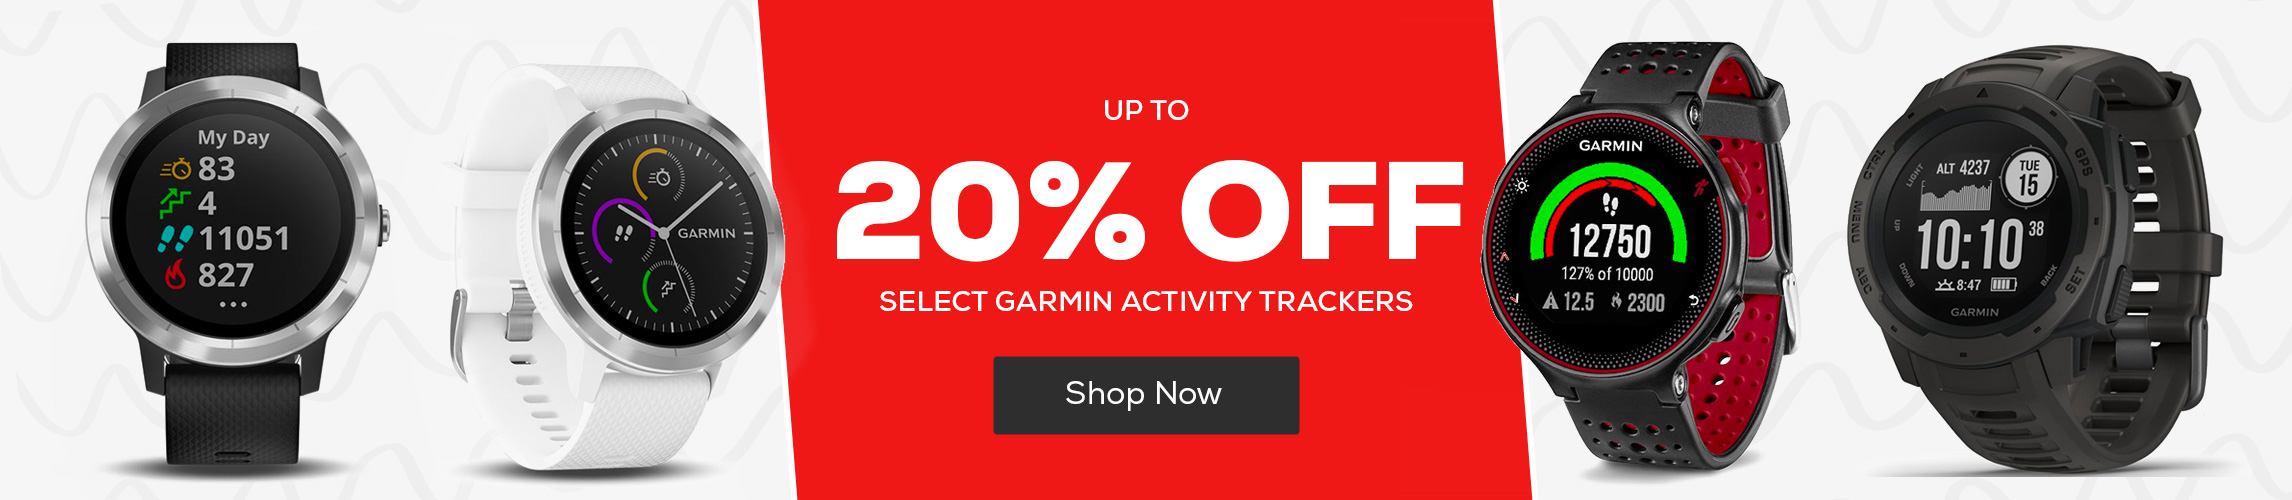 Save up to 20% Off Select Garmin Activity Trackers